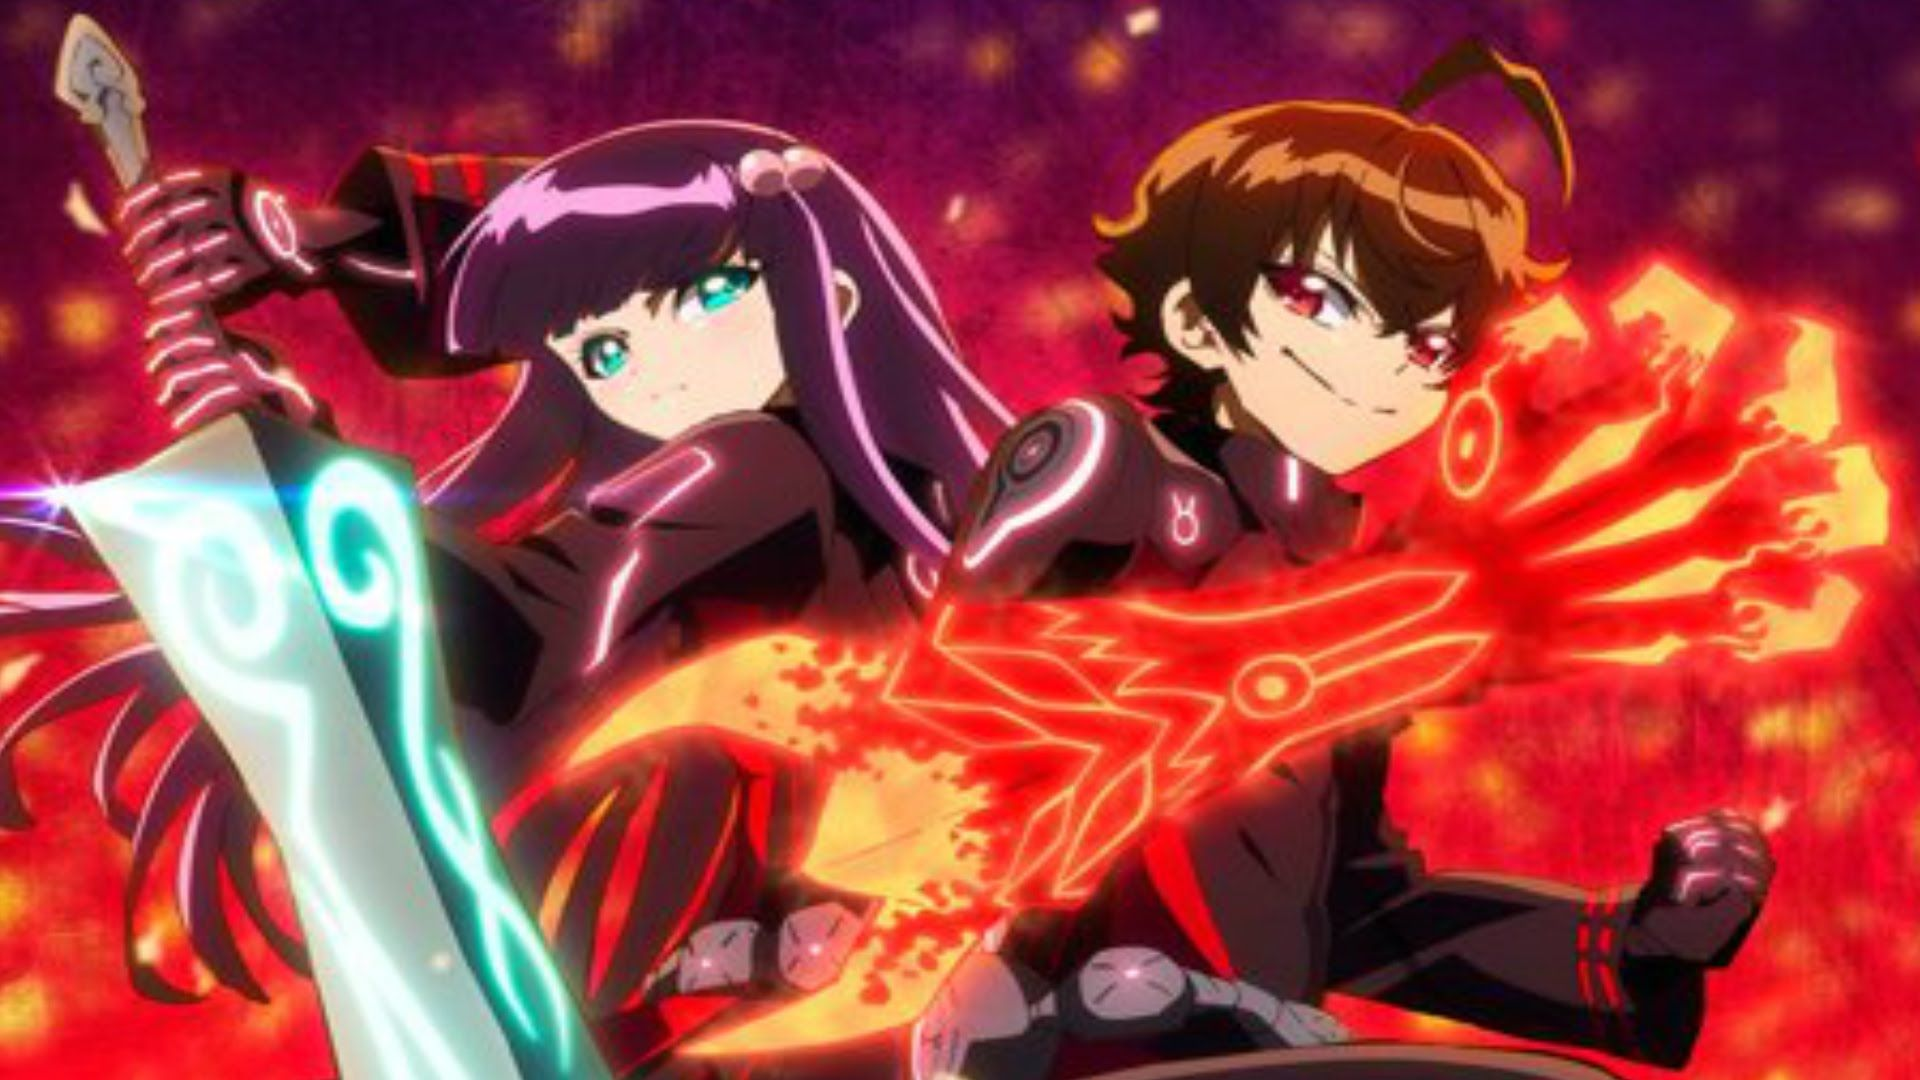 Review Twin Star Exorcists Episode 1 The Destined Two Boy Meets Girl Geeks Under Grace Twin Star Exorcist Anime Boy Meets Girl